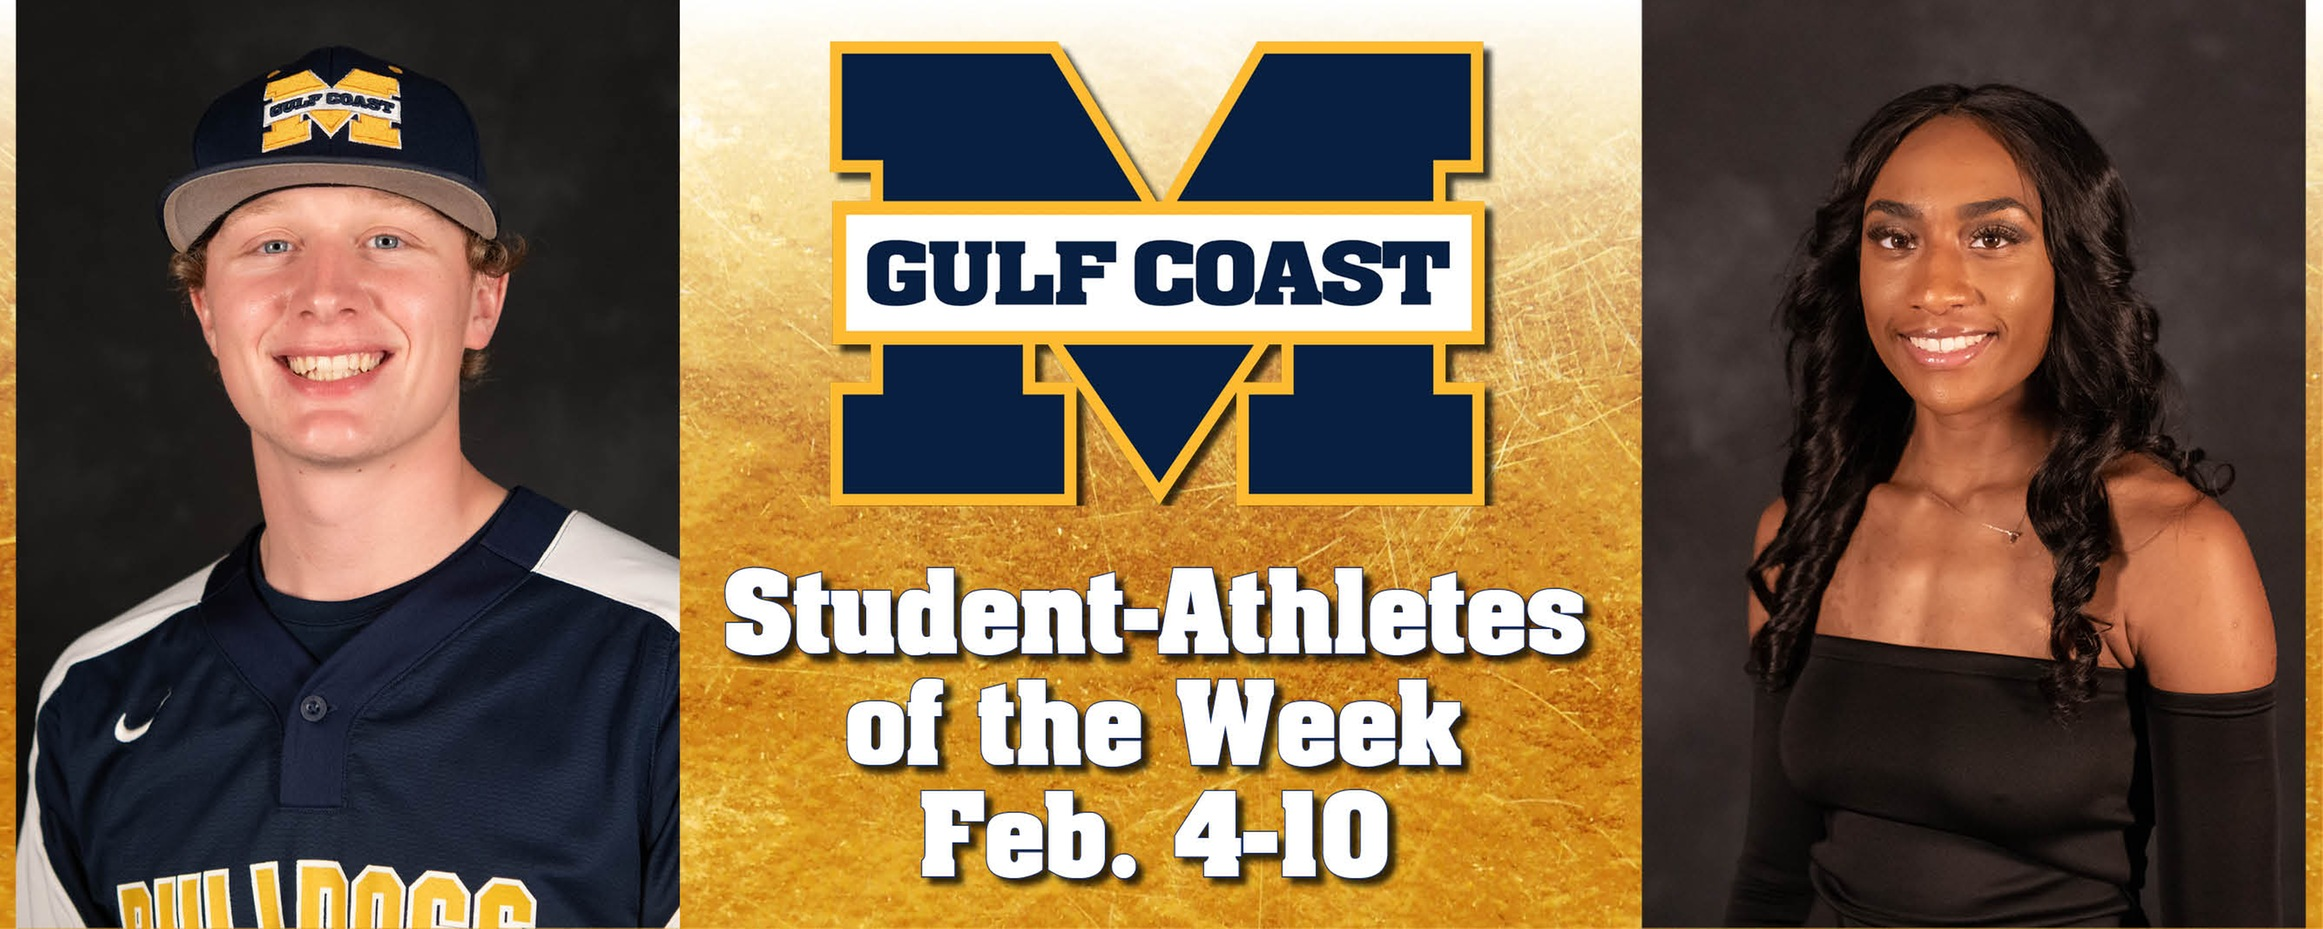 Hall, Thigpen named MGCCC Student-Athletes of the Week